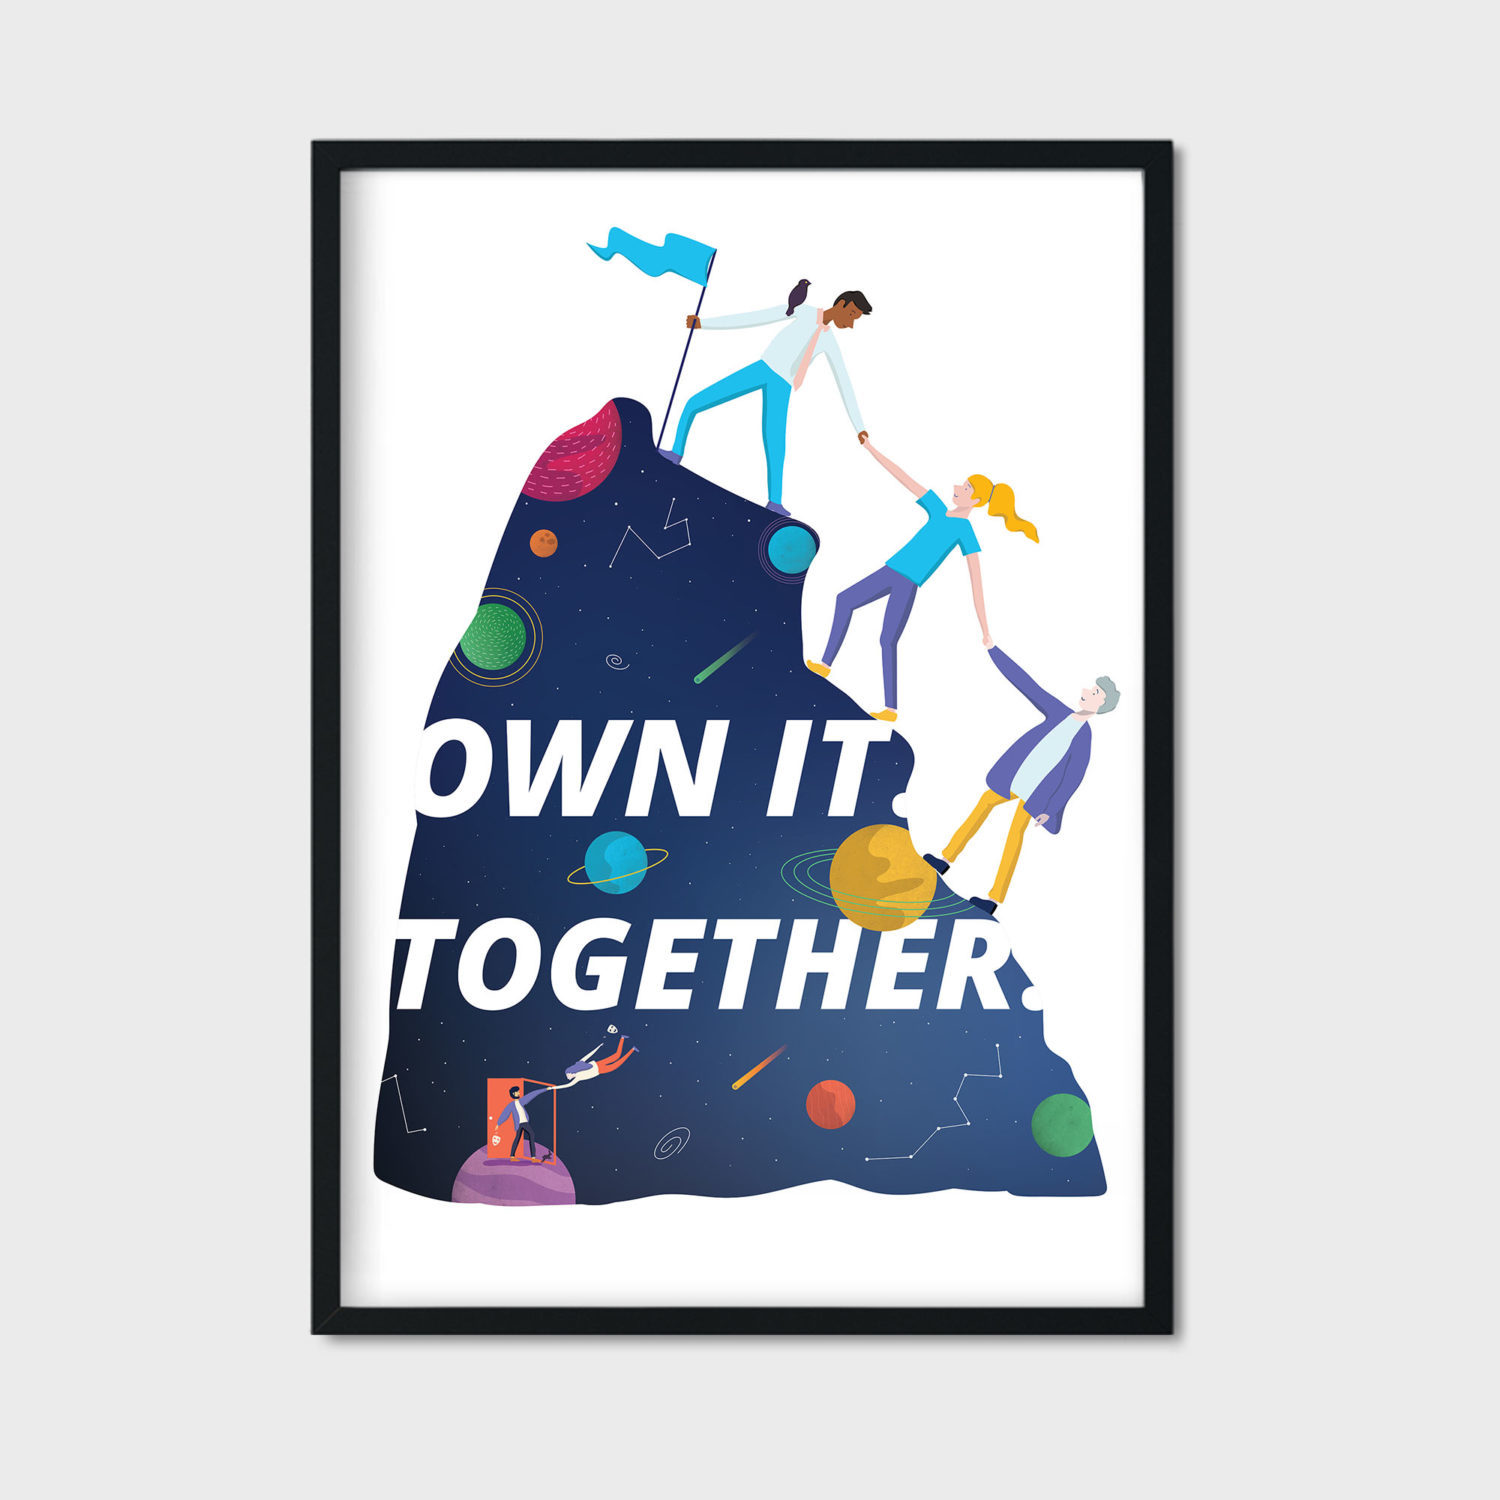 Own.it.together